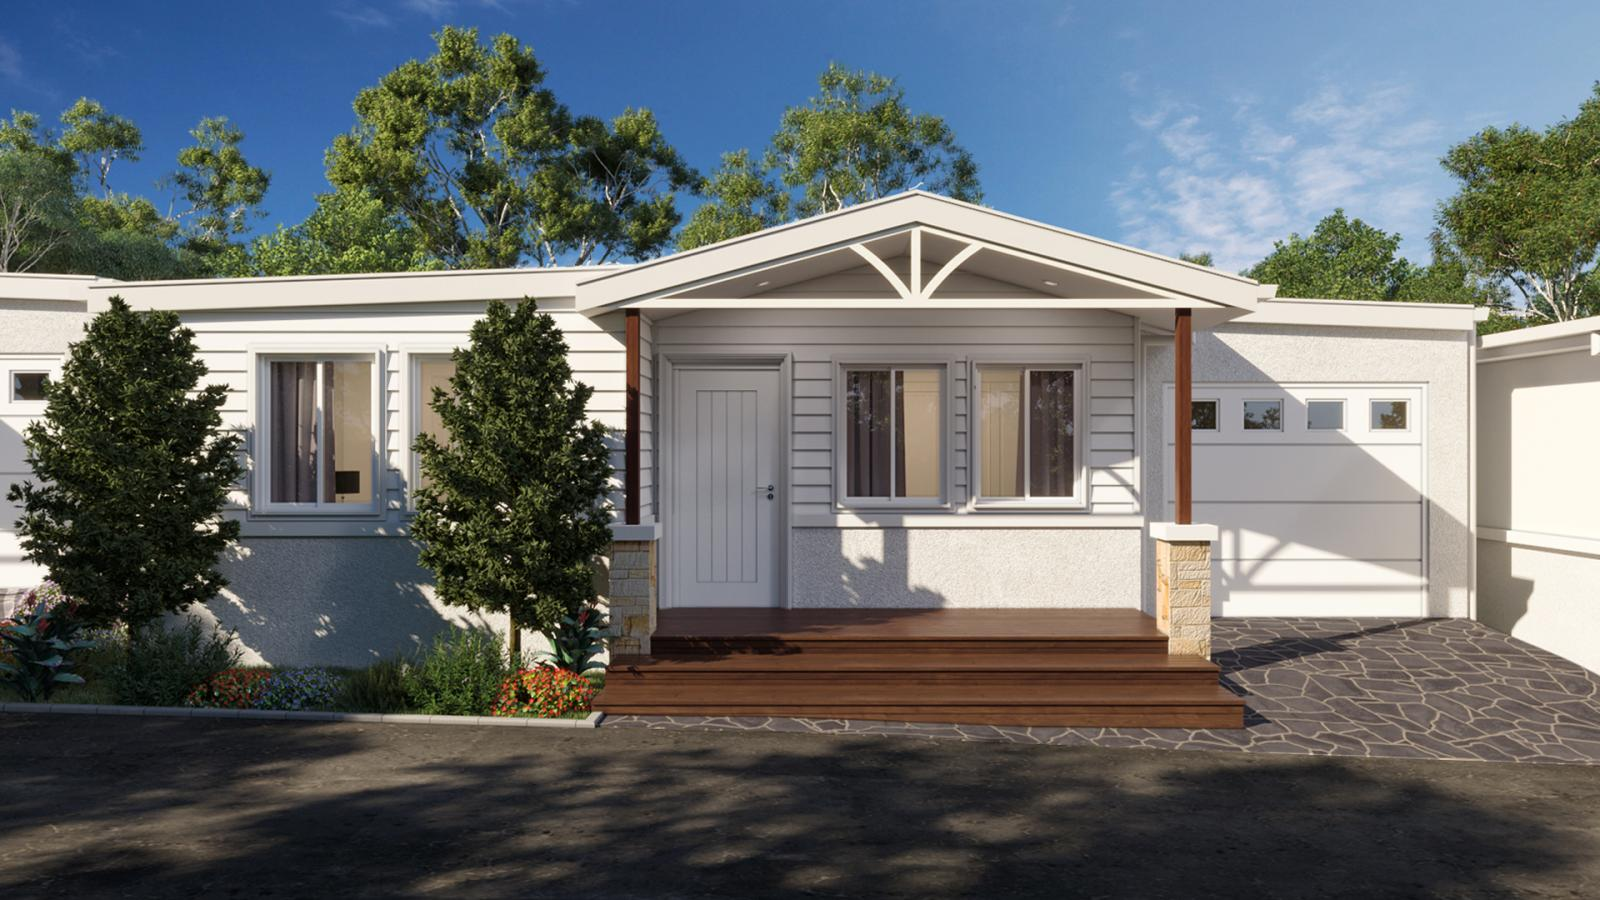 An artist's impression of the lakeside homes at Sunnylake Shores